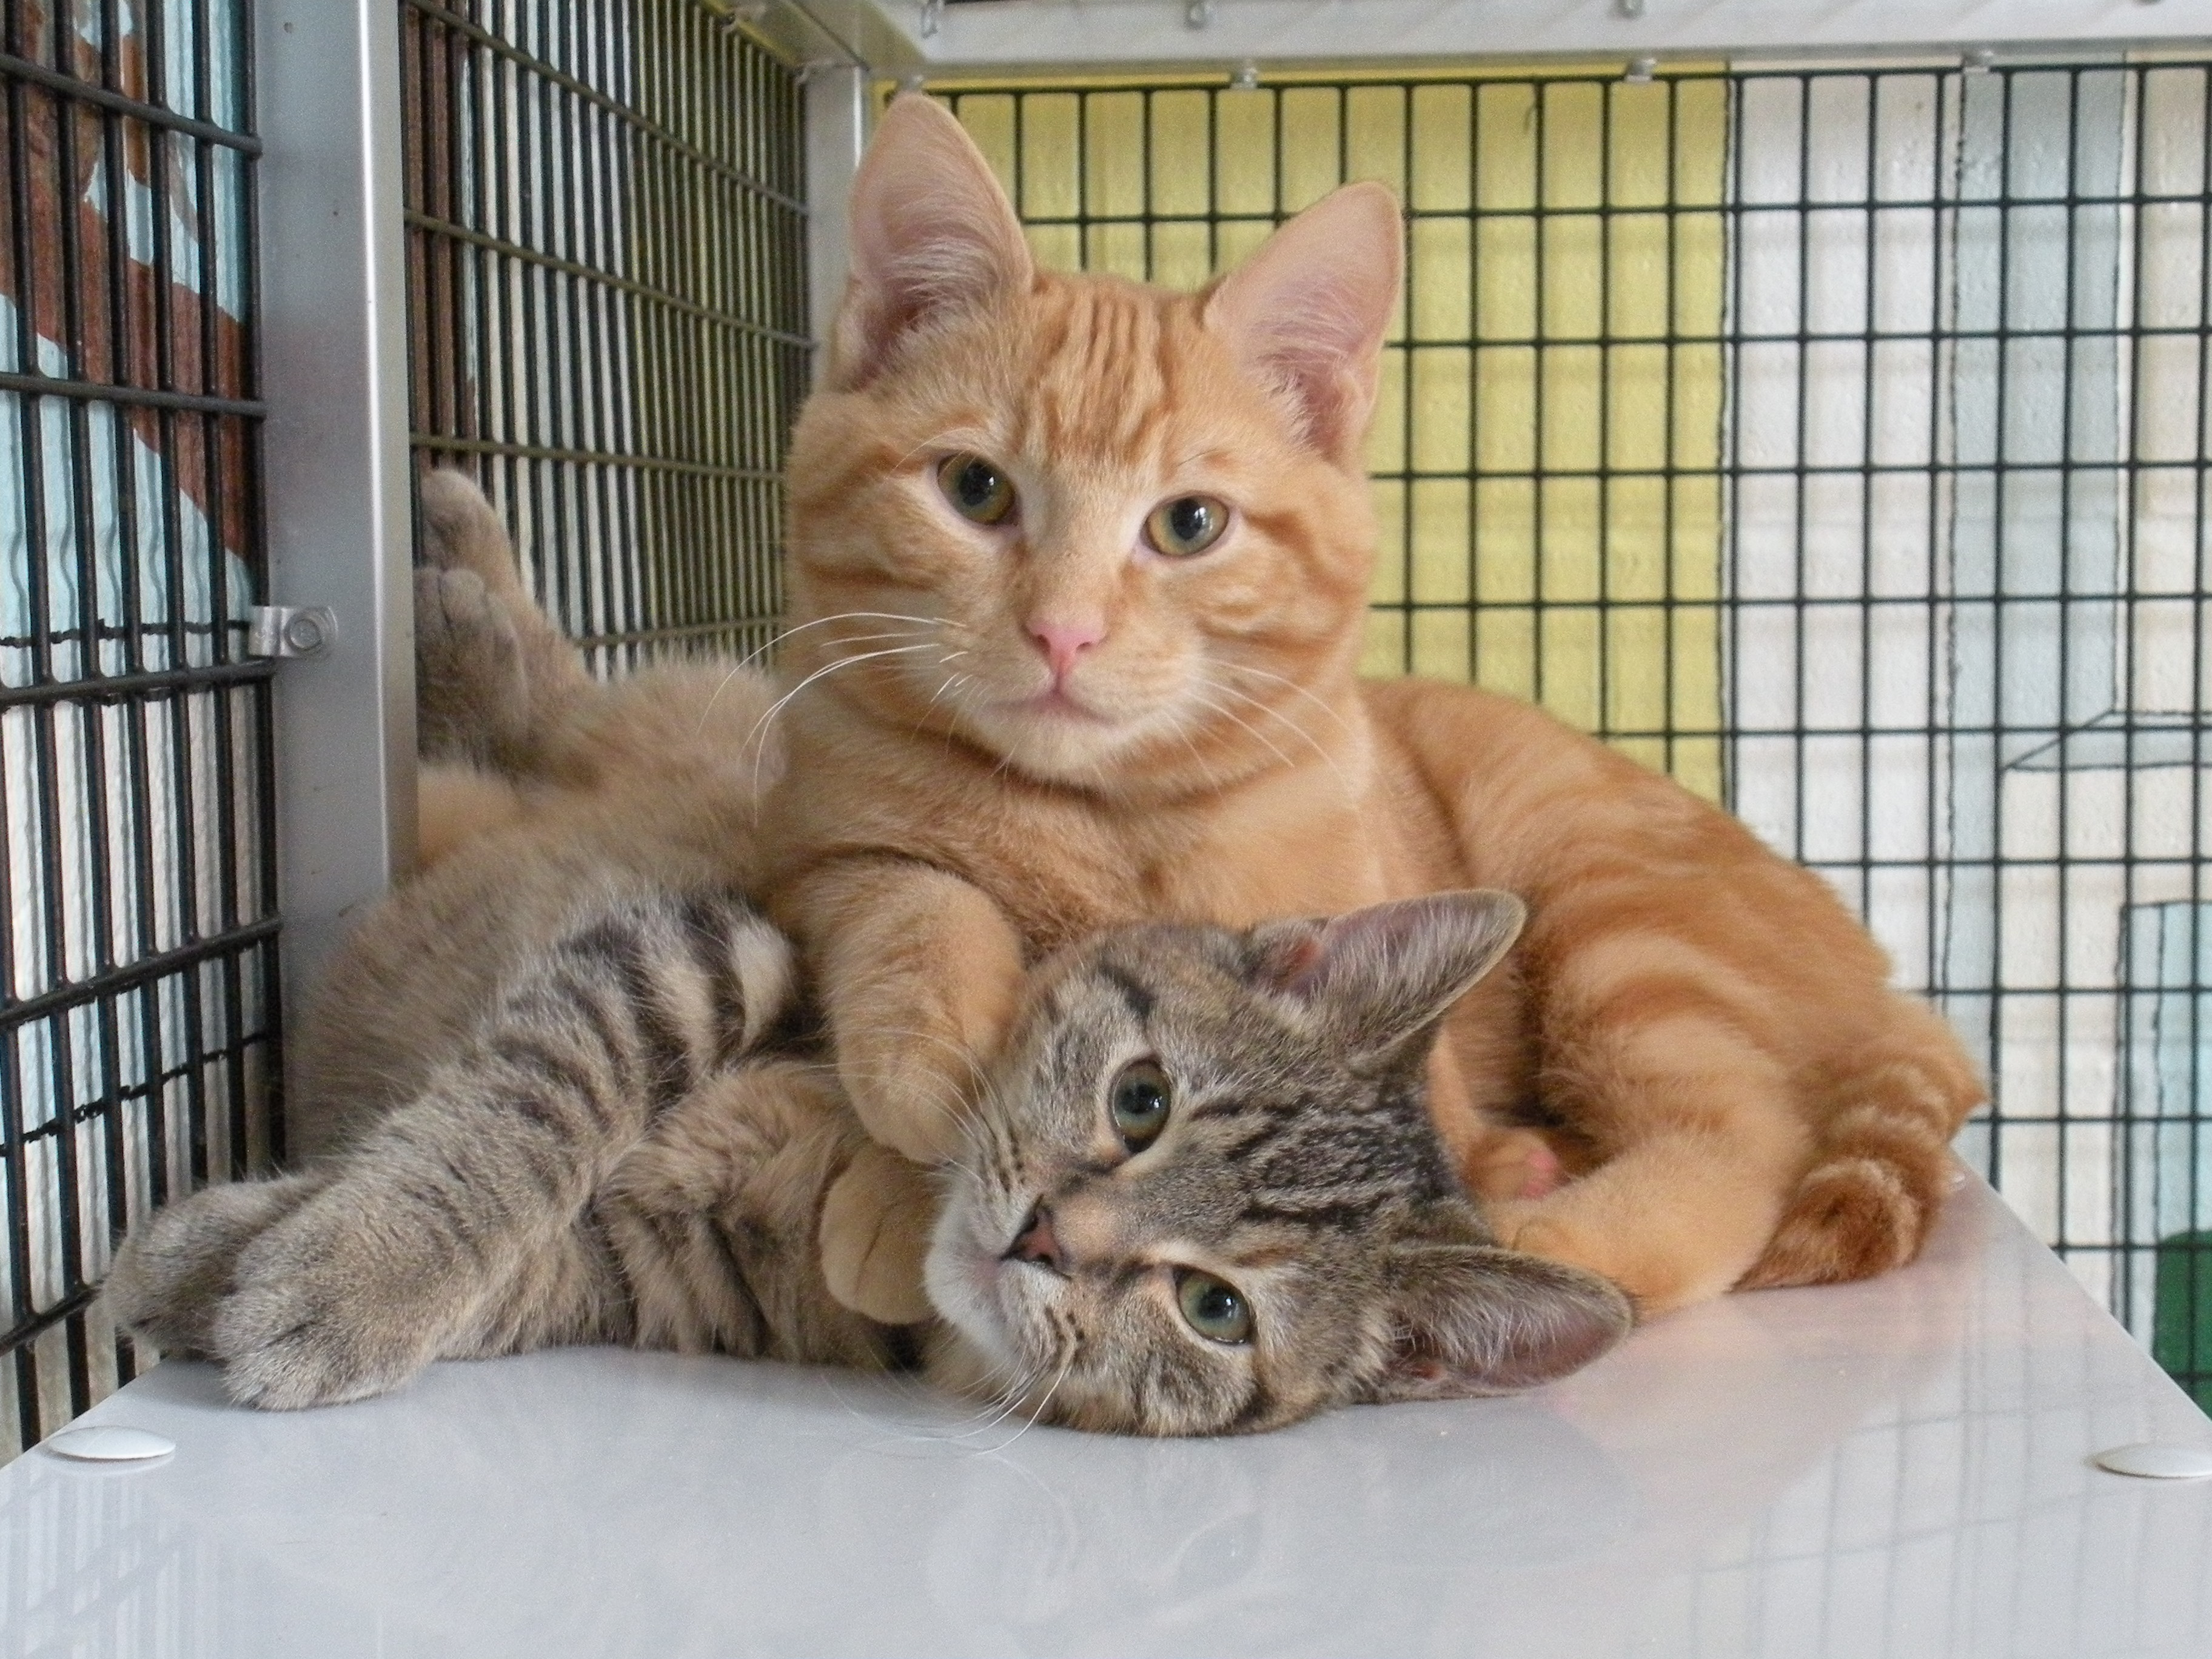 Shelter For Cats Wallpapers High Quality Download Free